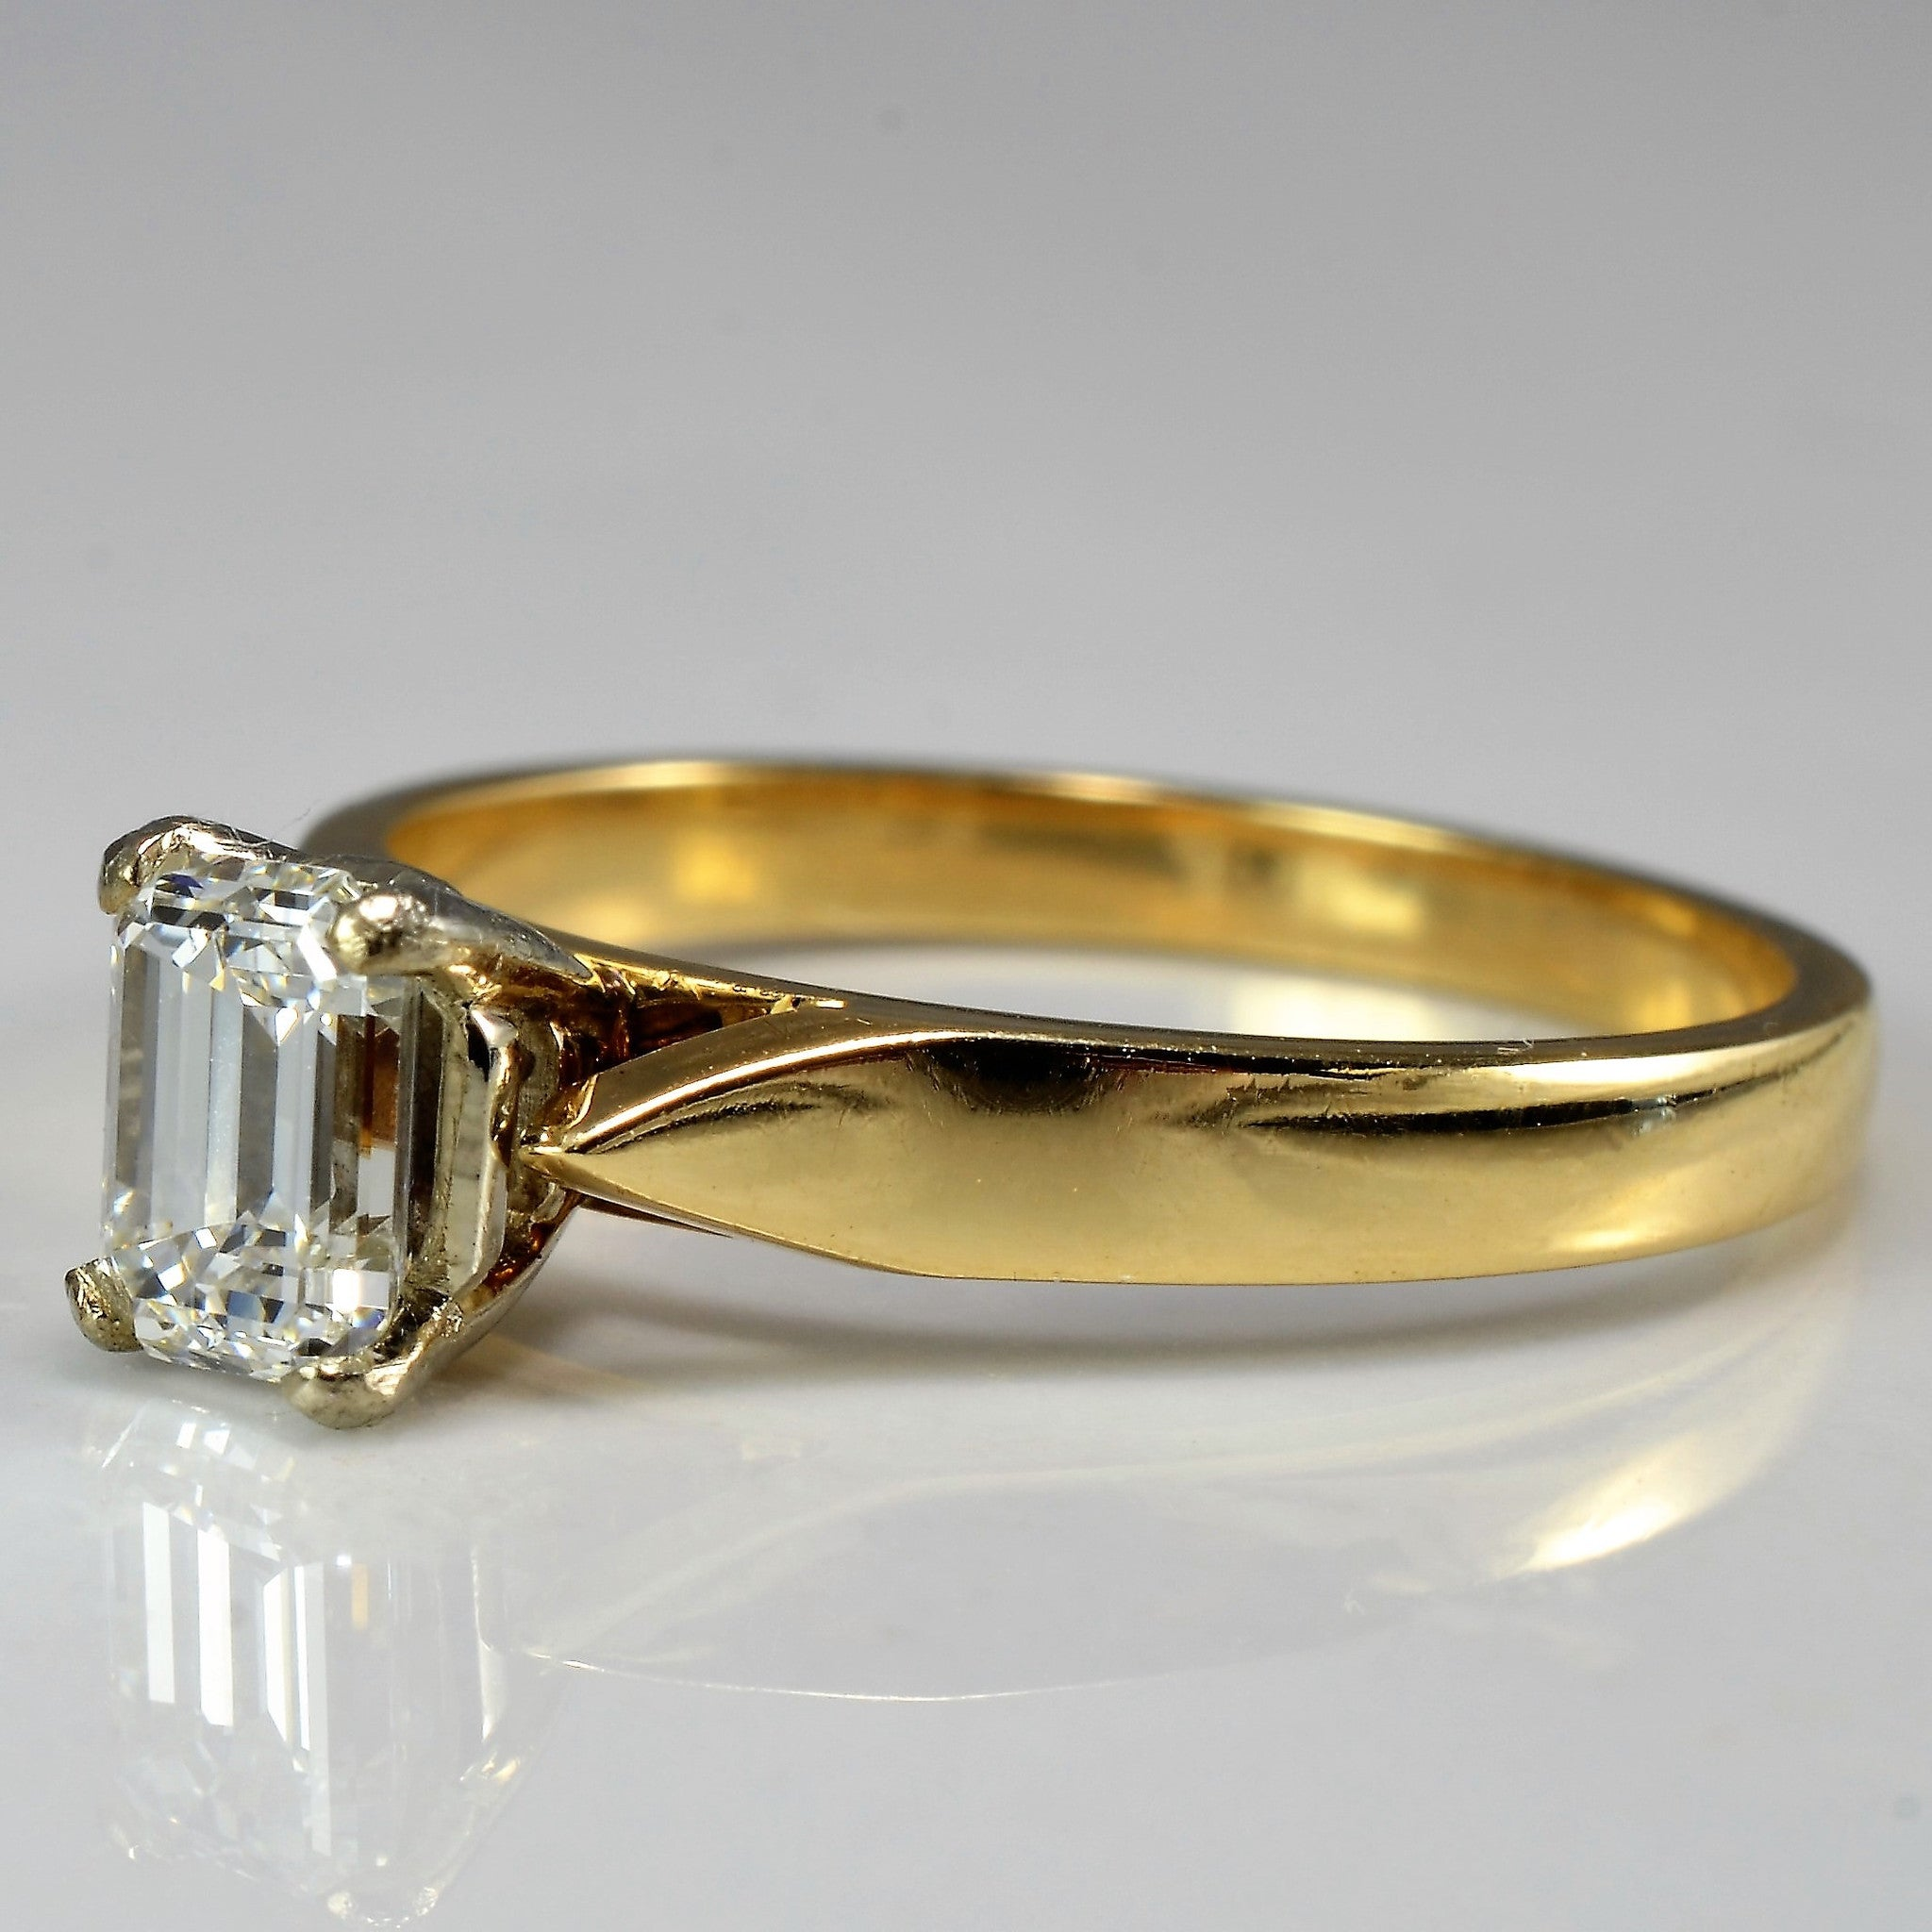 diamond gold rings jrj rocket ring johnny yellow ladies emerald cut ct wedding jewellery engagement